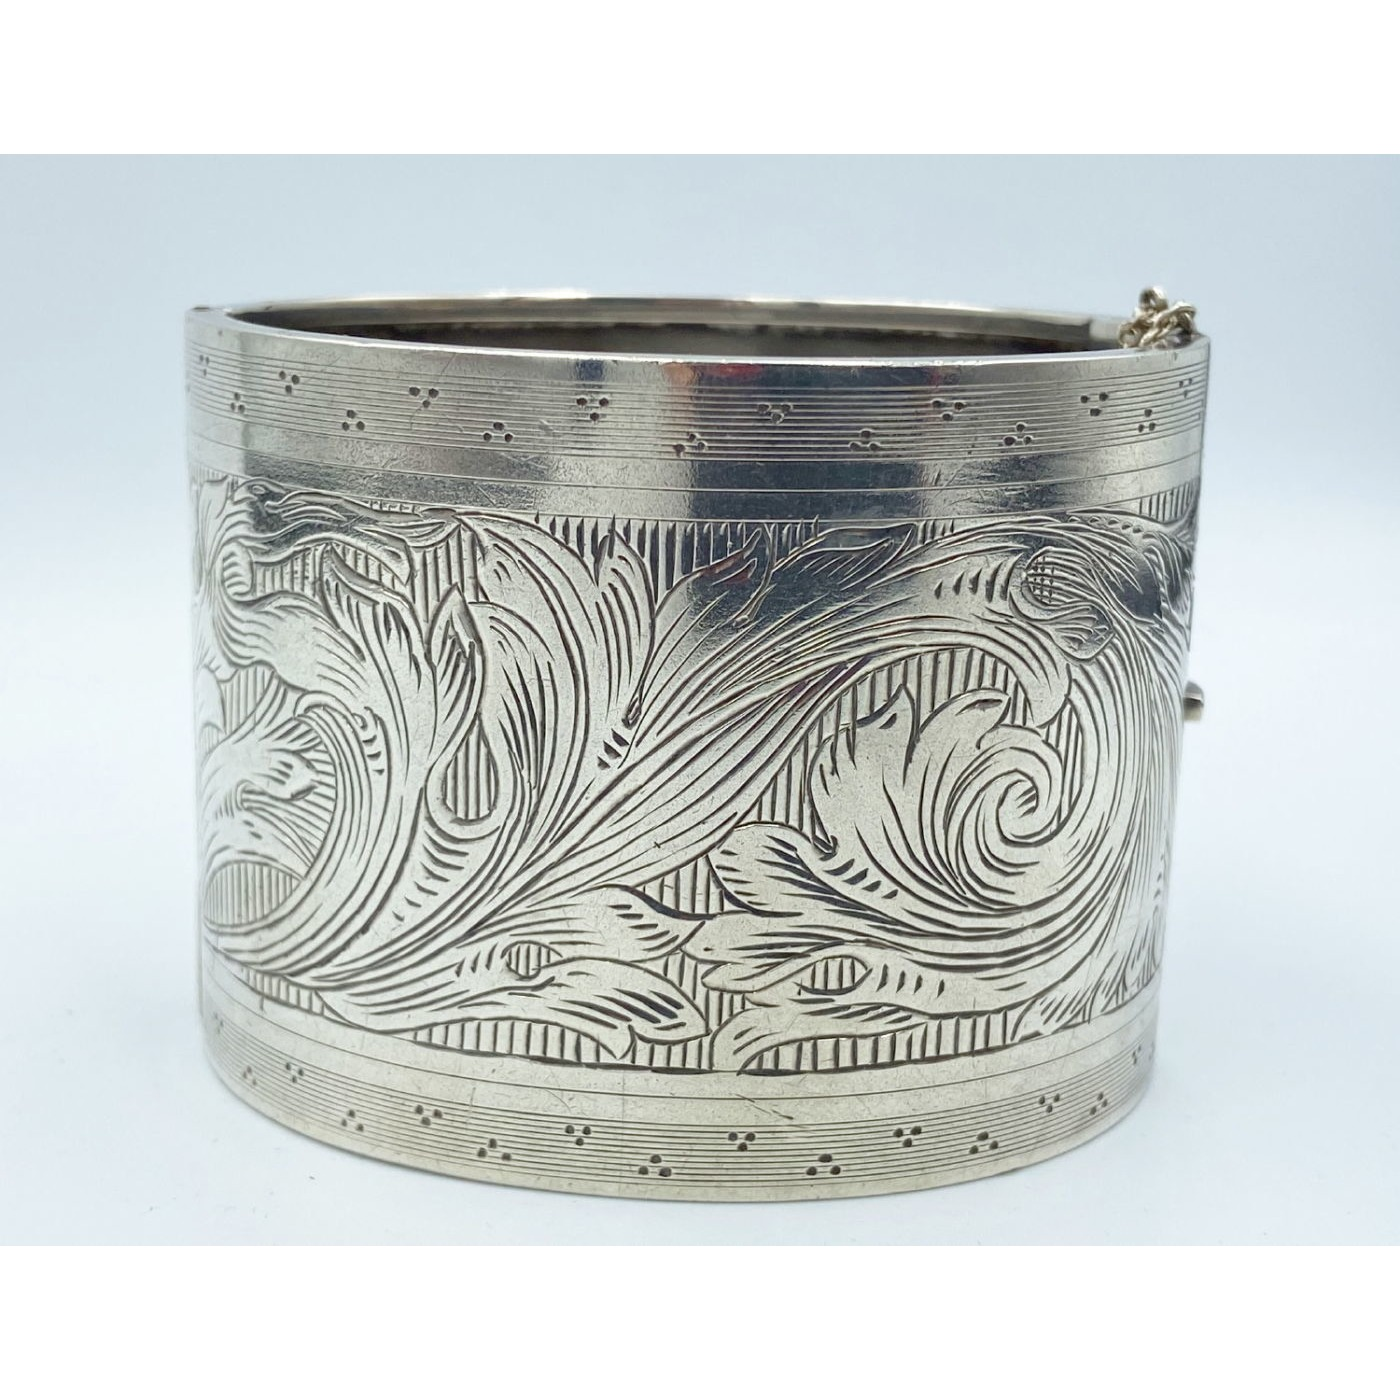 Widest Ever English Silver Bangle - With All My Love